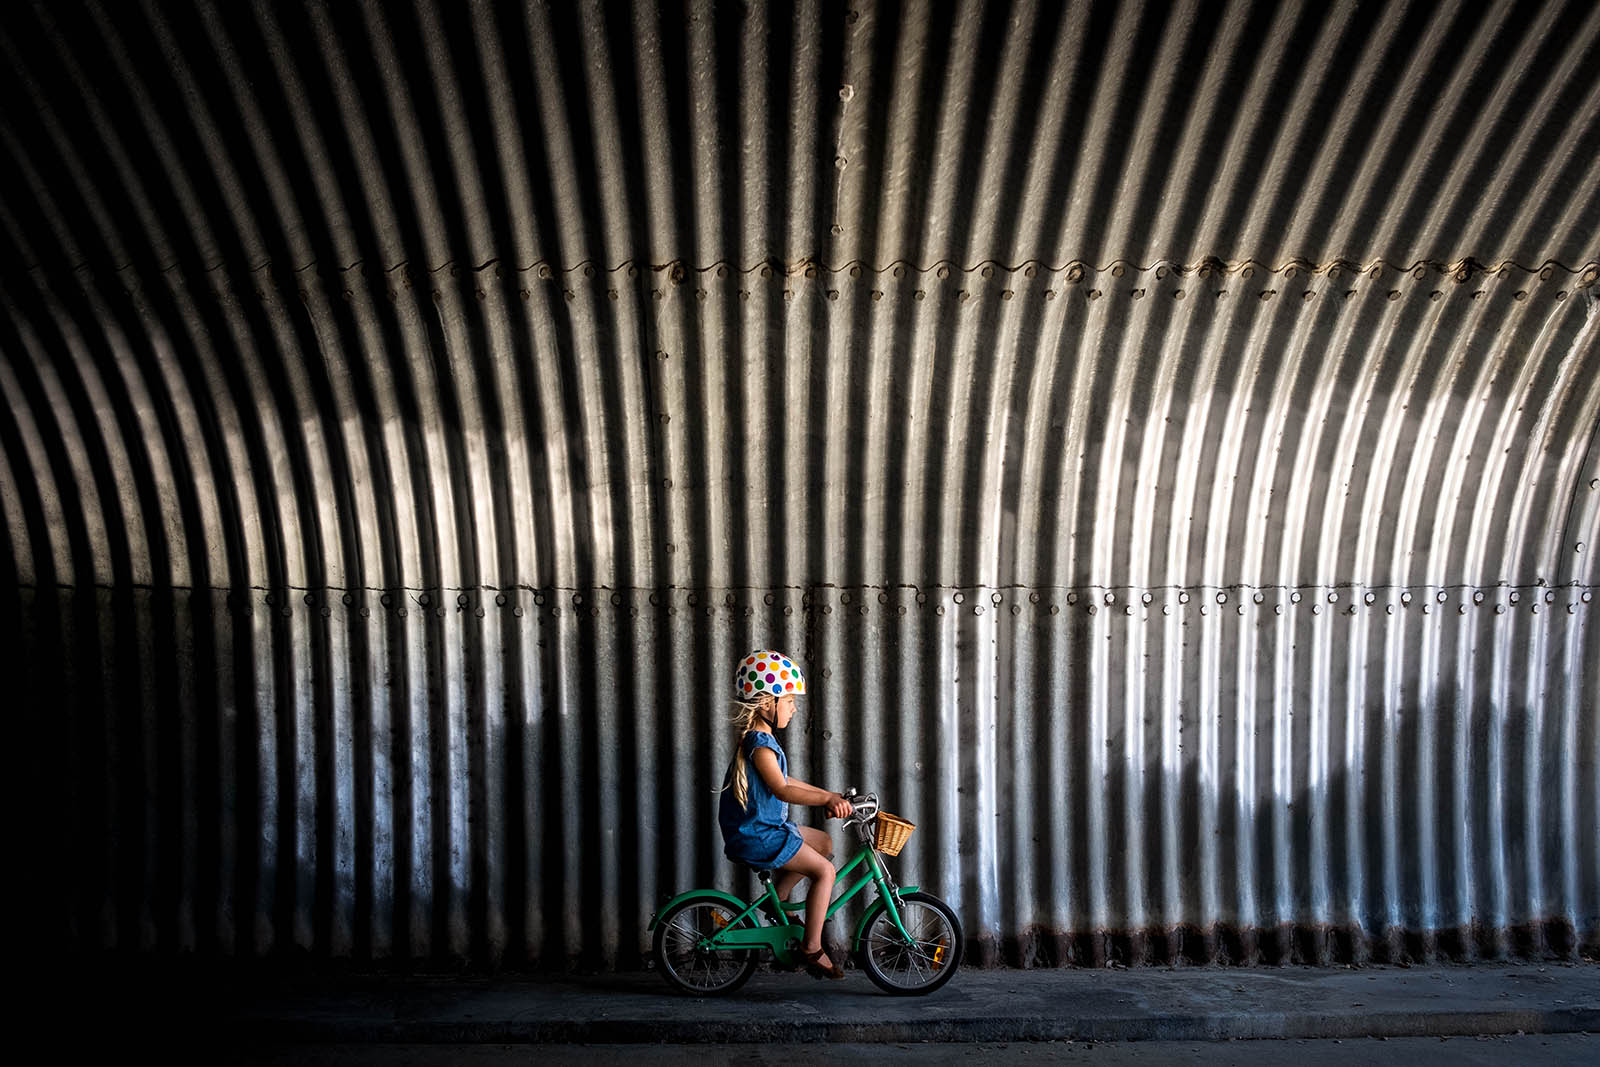 Girl on bike in tunnel, taken with Fujifilm mirrorless camera